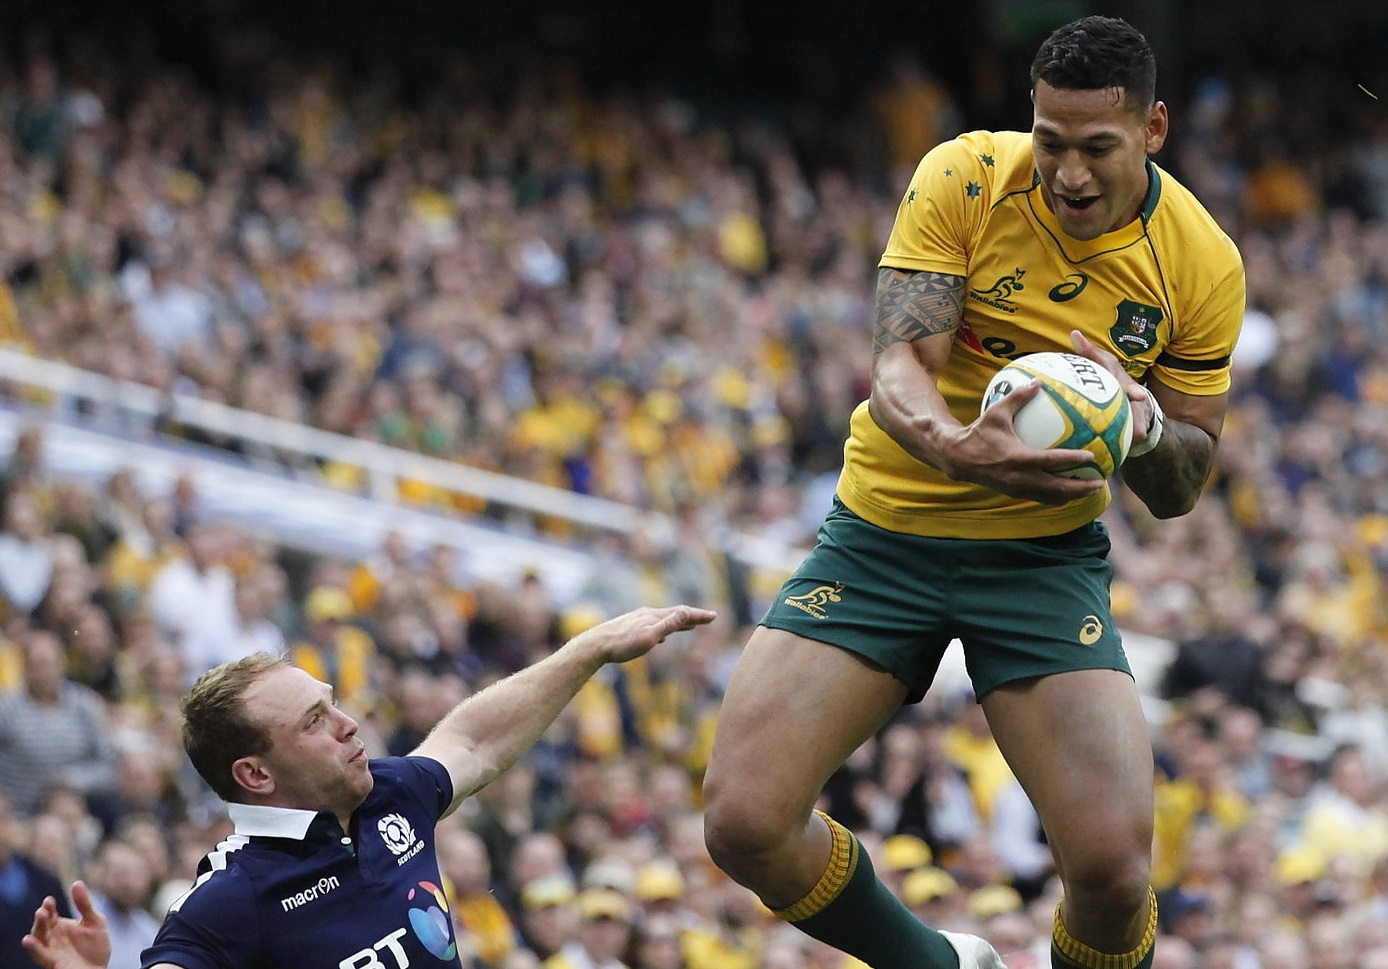 Israel Folau: Moral Compass All Askew as Virtue Is Eclipsed by Values